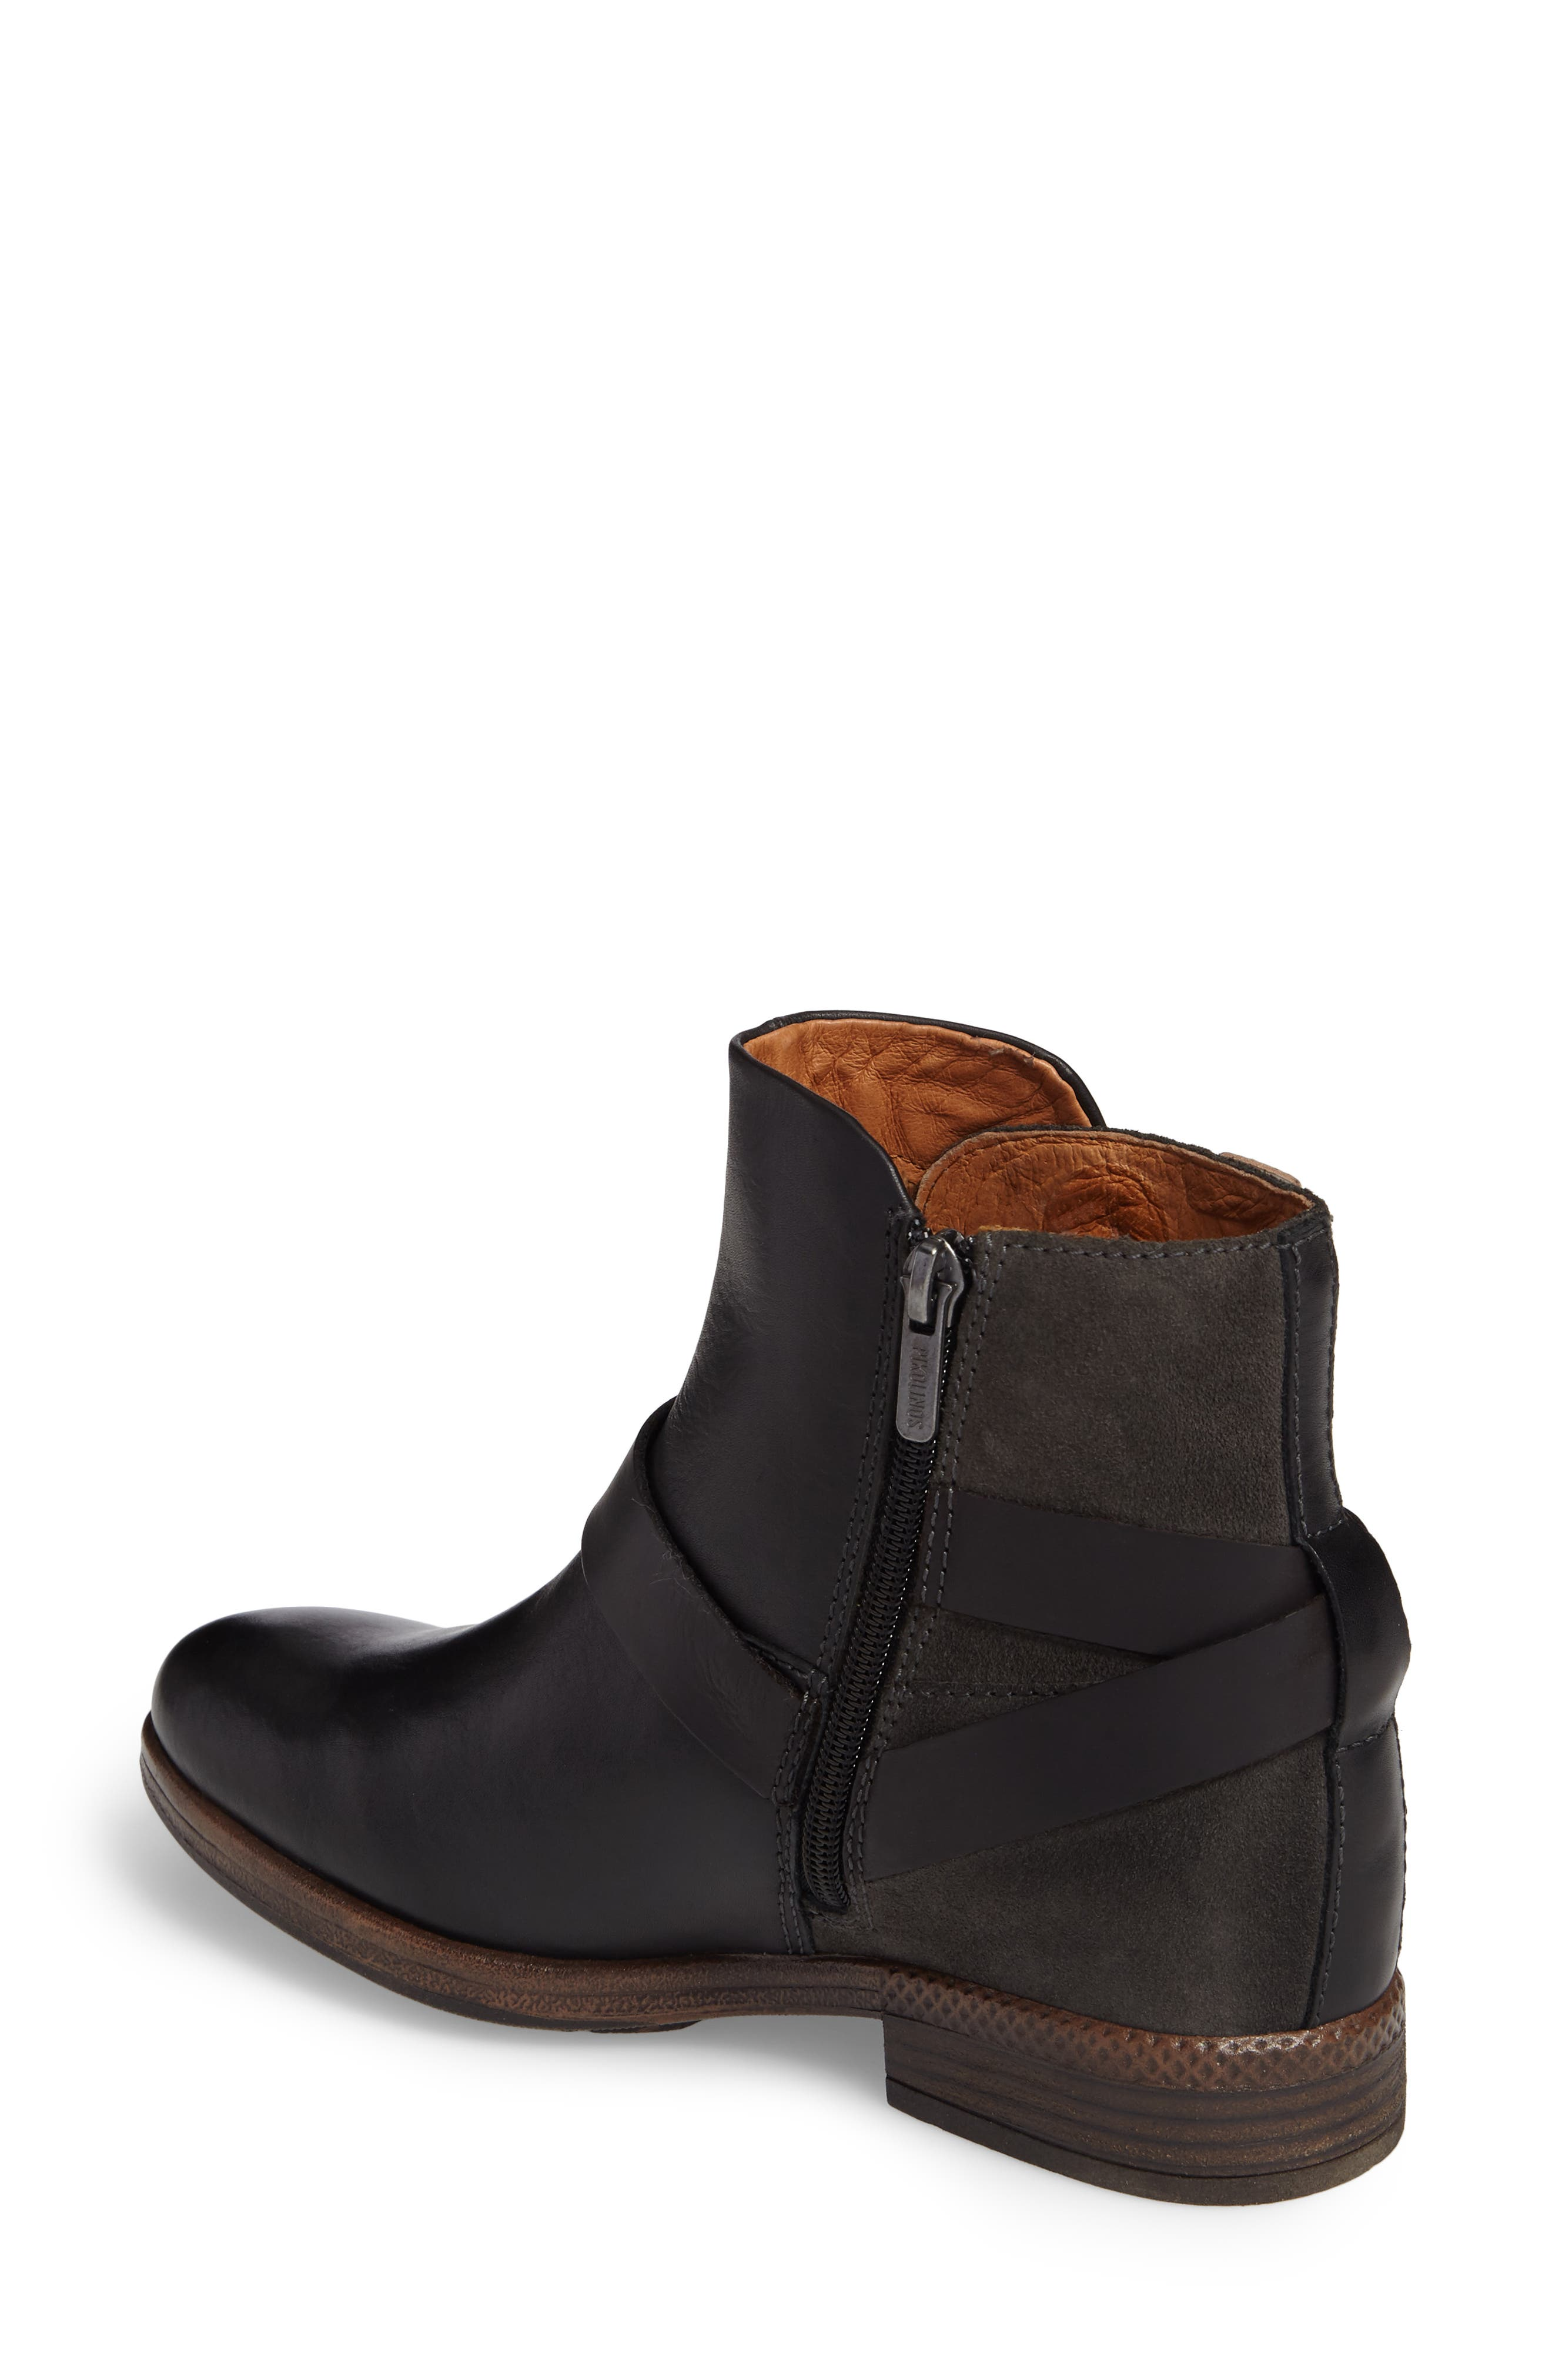 Ordino Bootie,                             Alternate thumbnail 2, color,                             Black Lead Leather